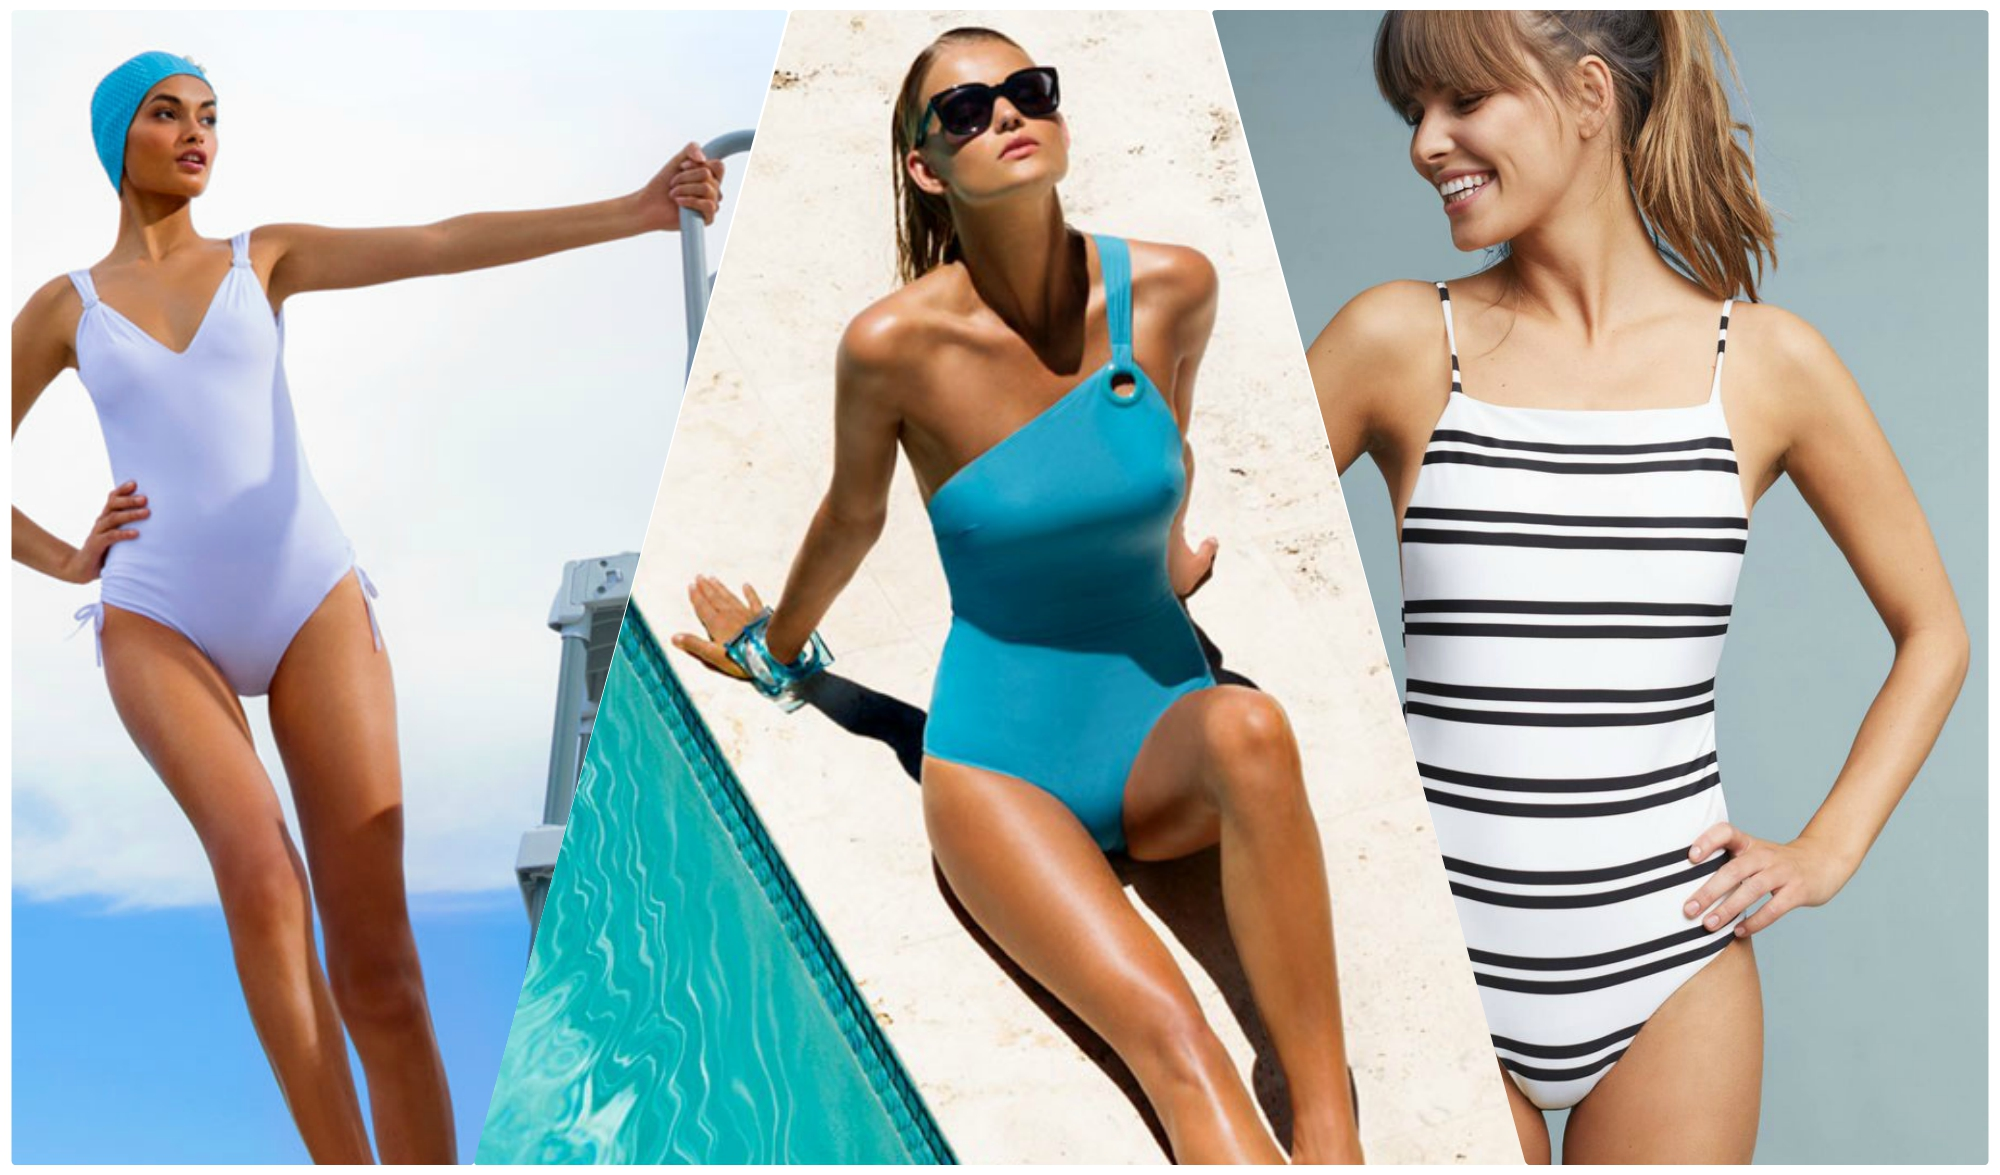 The Most Iconic Swimwear Brands6